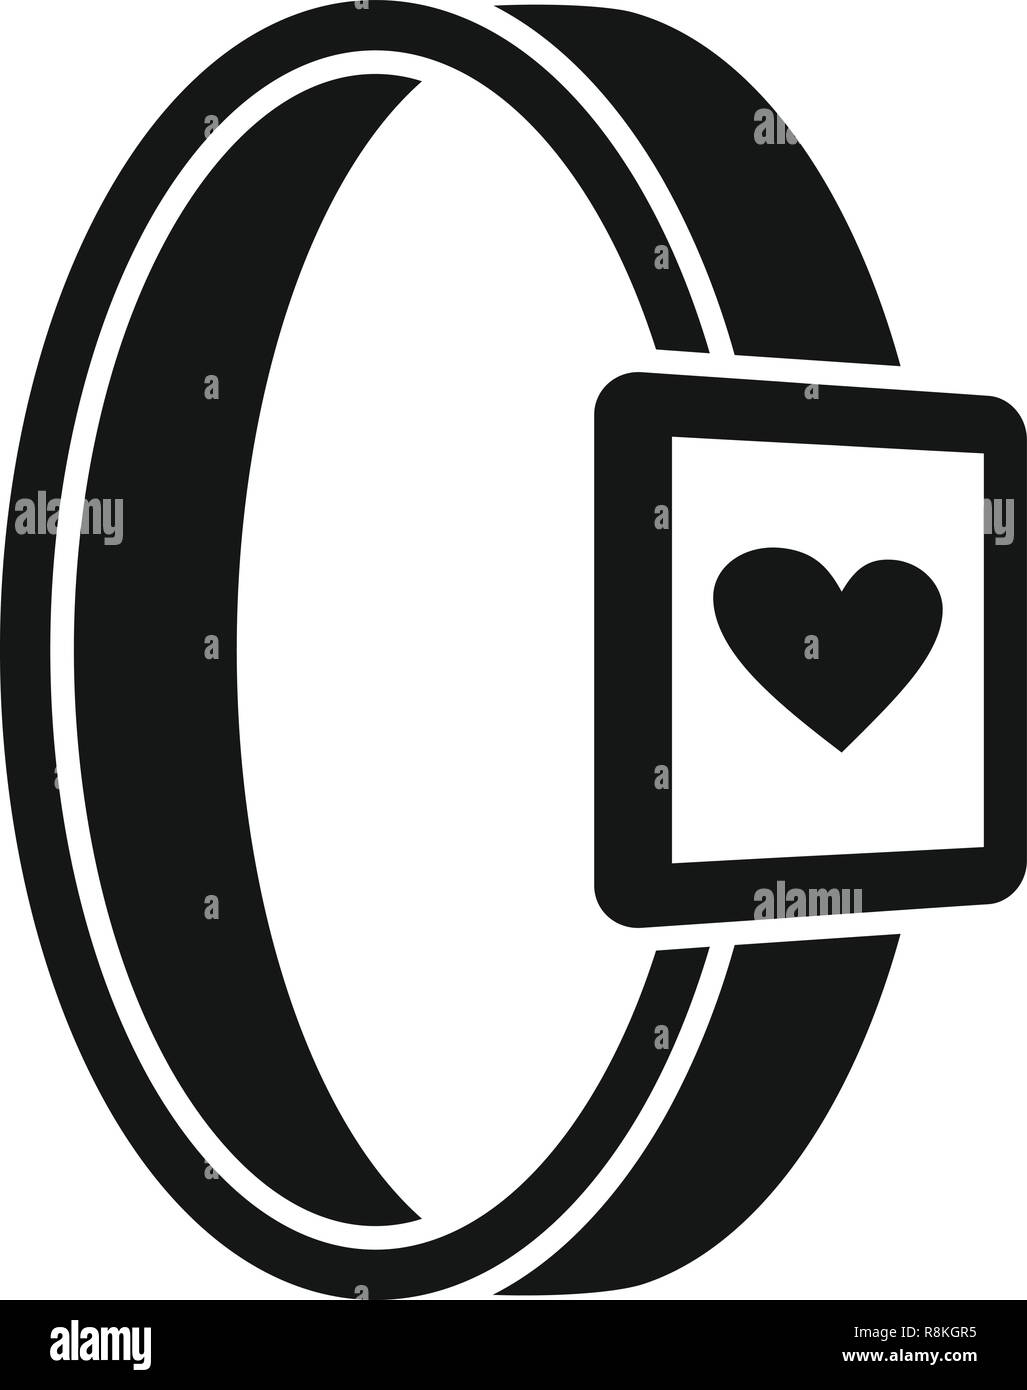 Smartwatch heart monitor icon. Simple illustration of smartwatch heart monitor vector icon for web design isolated on white background - Stock Image